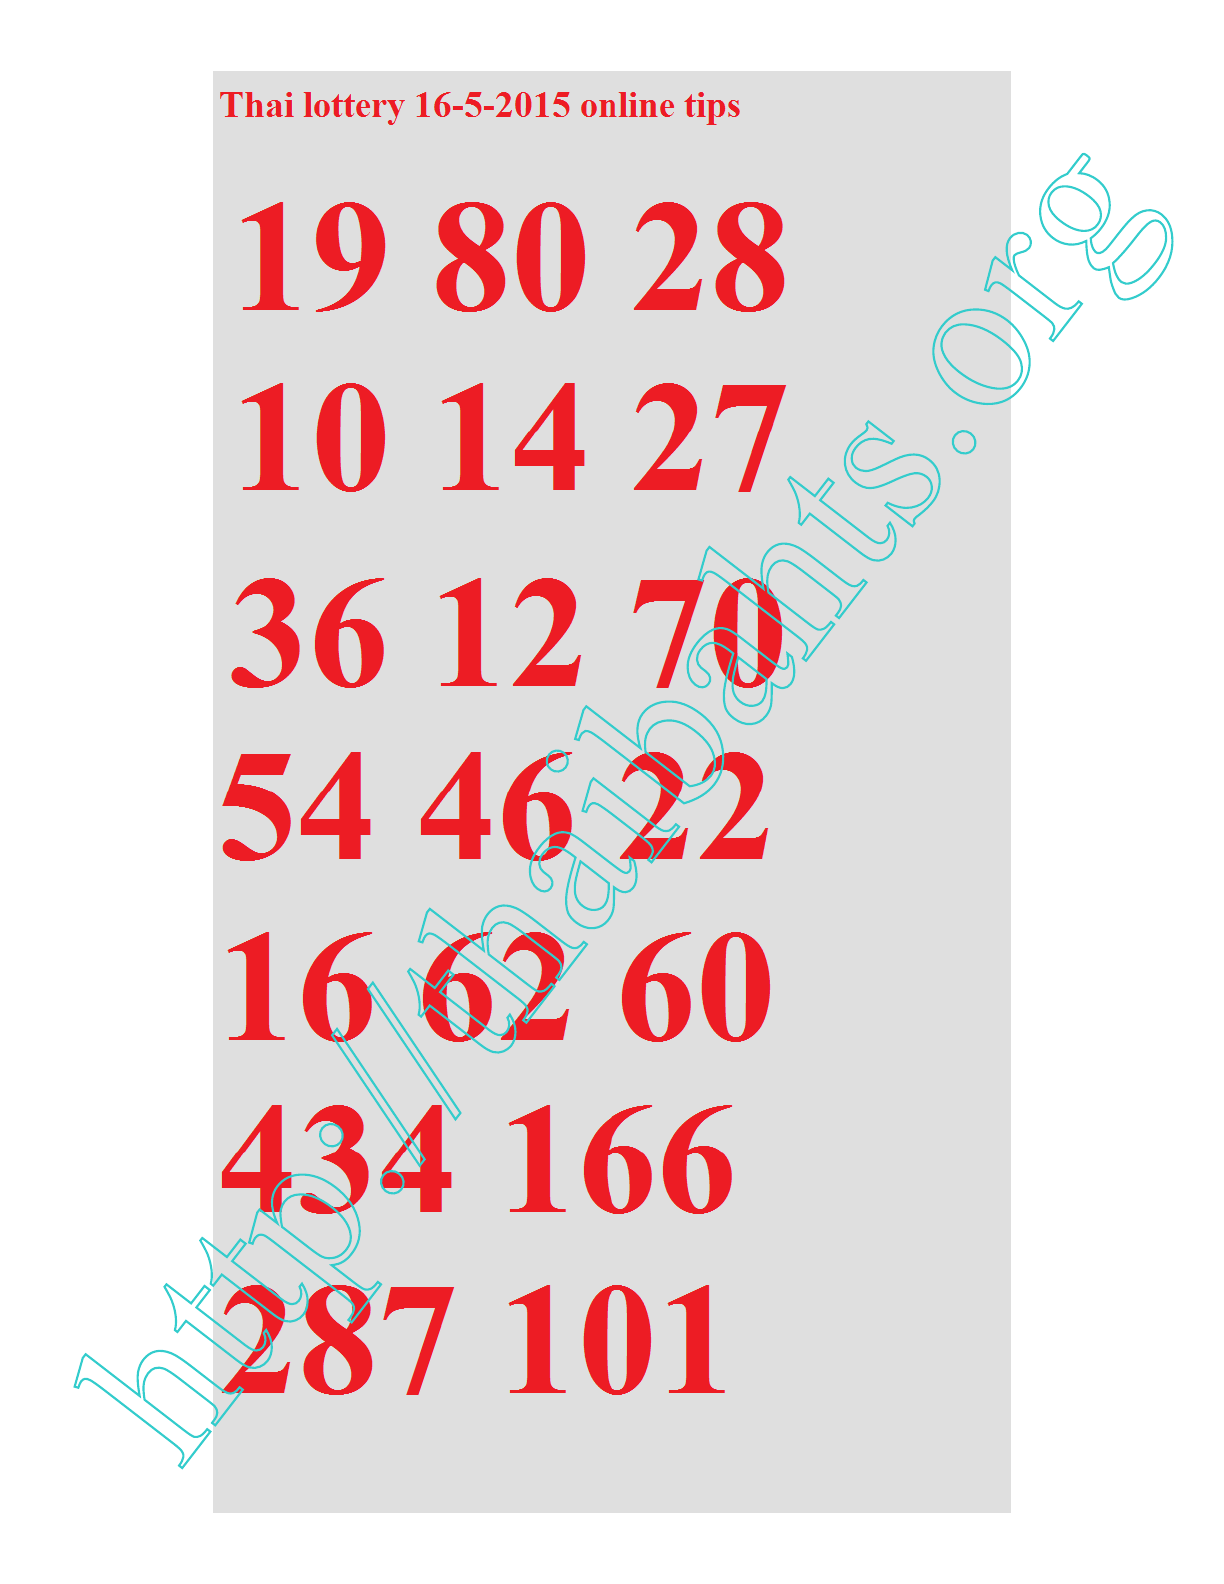 Thai lottery results 1652015 check online tips thai lottery sure